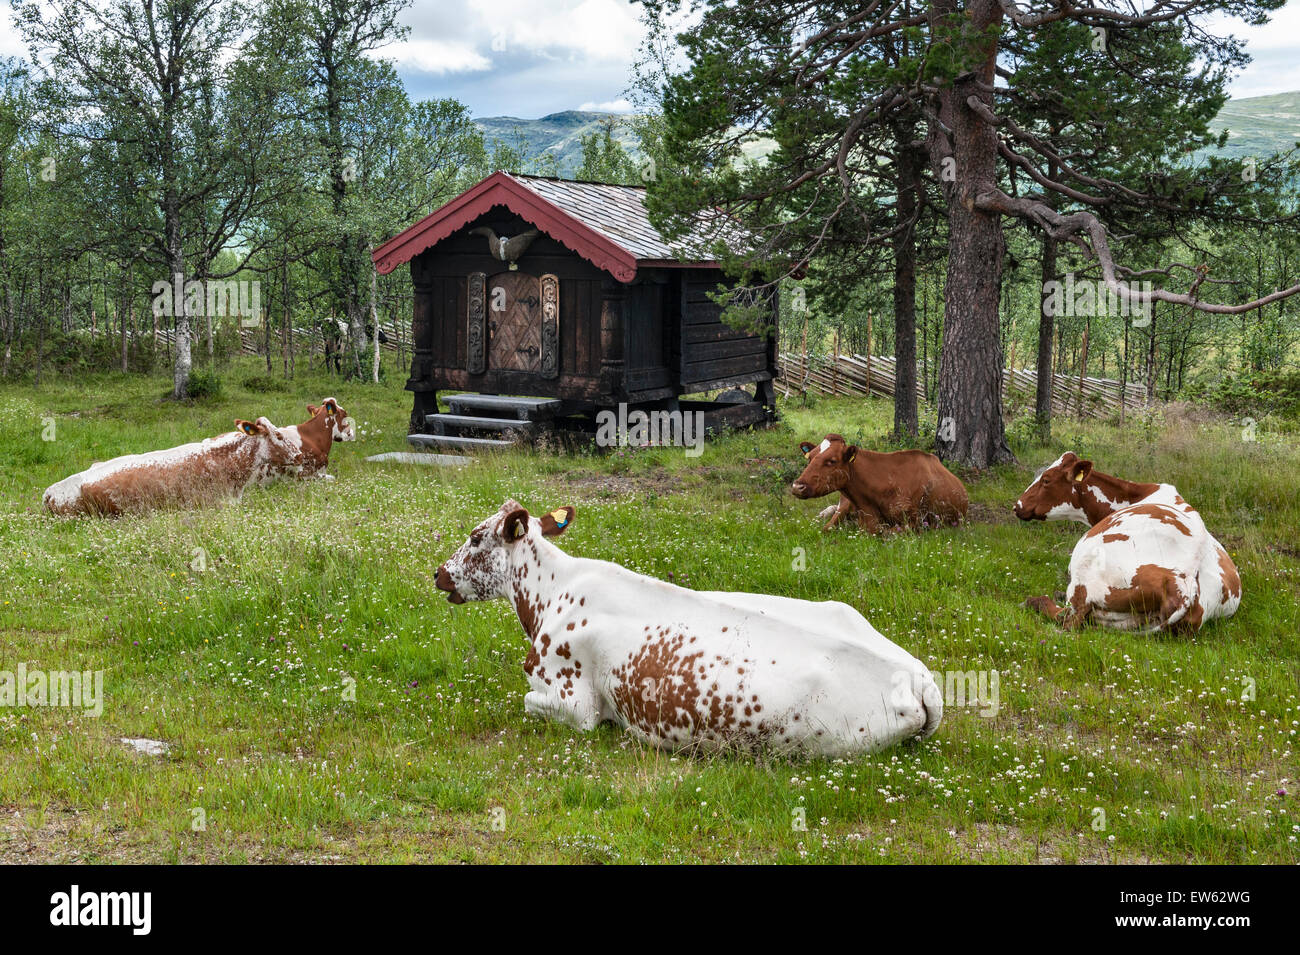 Norway, the Gudbrandsdalen Valley. Cattle grazing around a traditional  mountain hut (hytte) in the summer - Stock Image